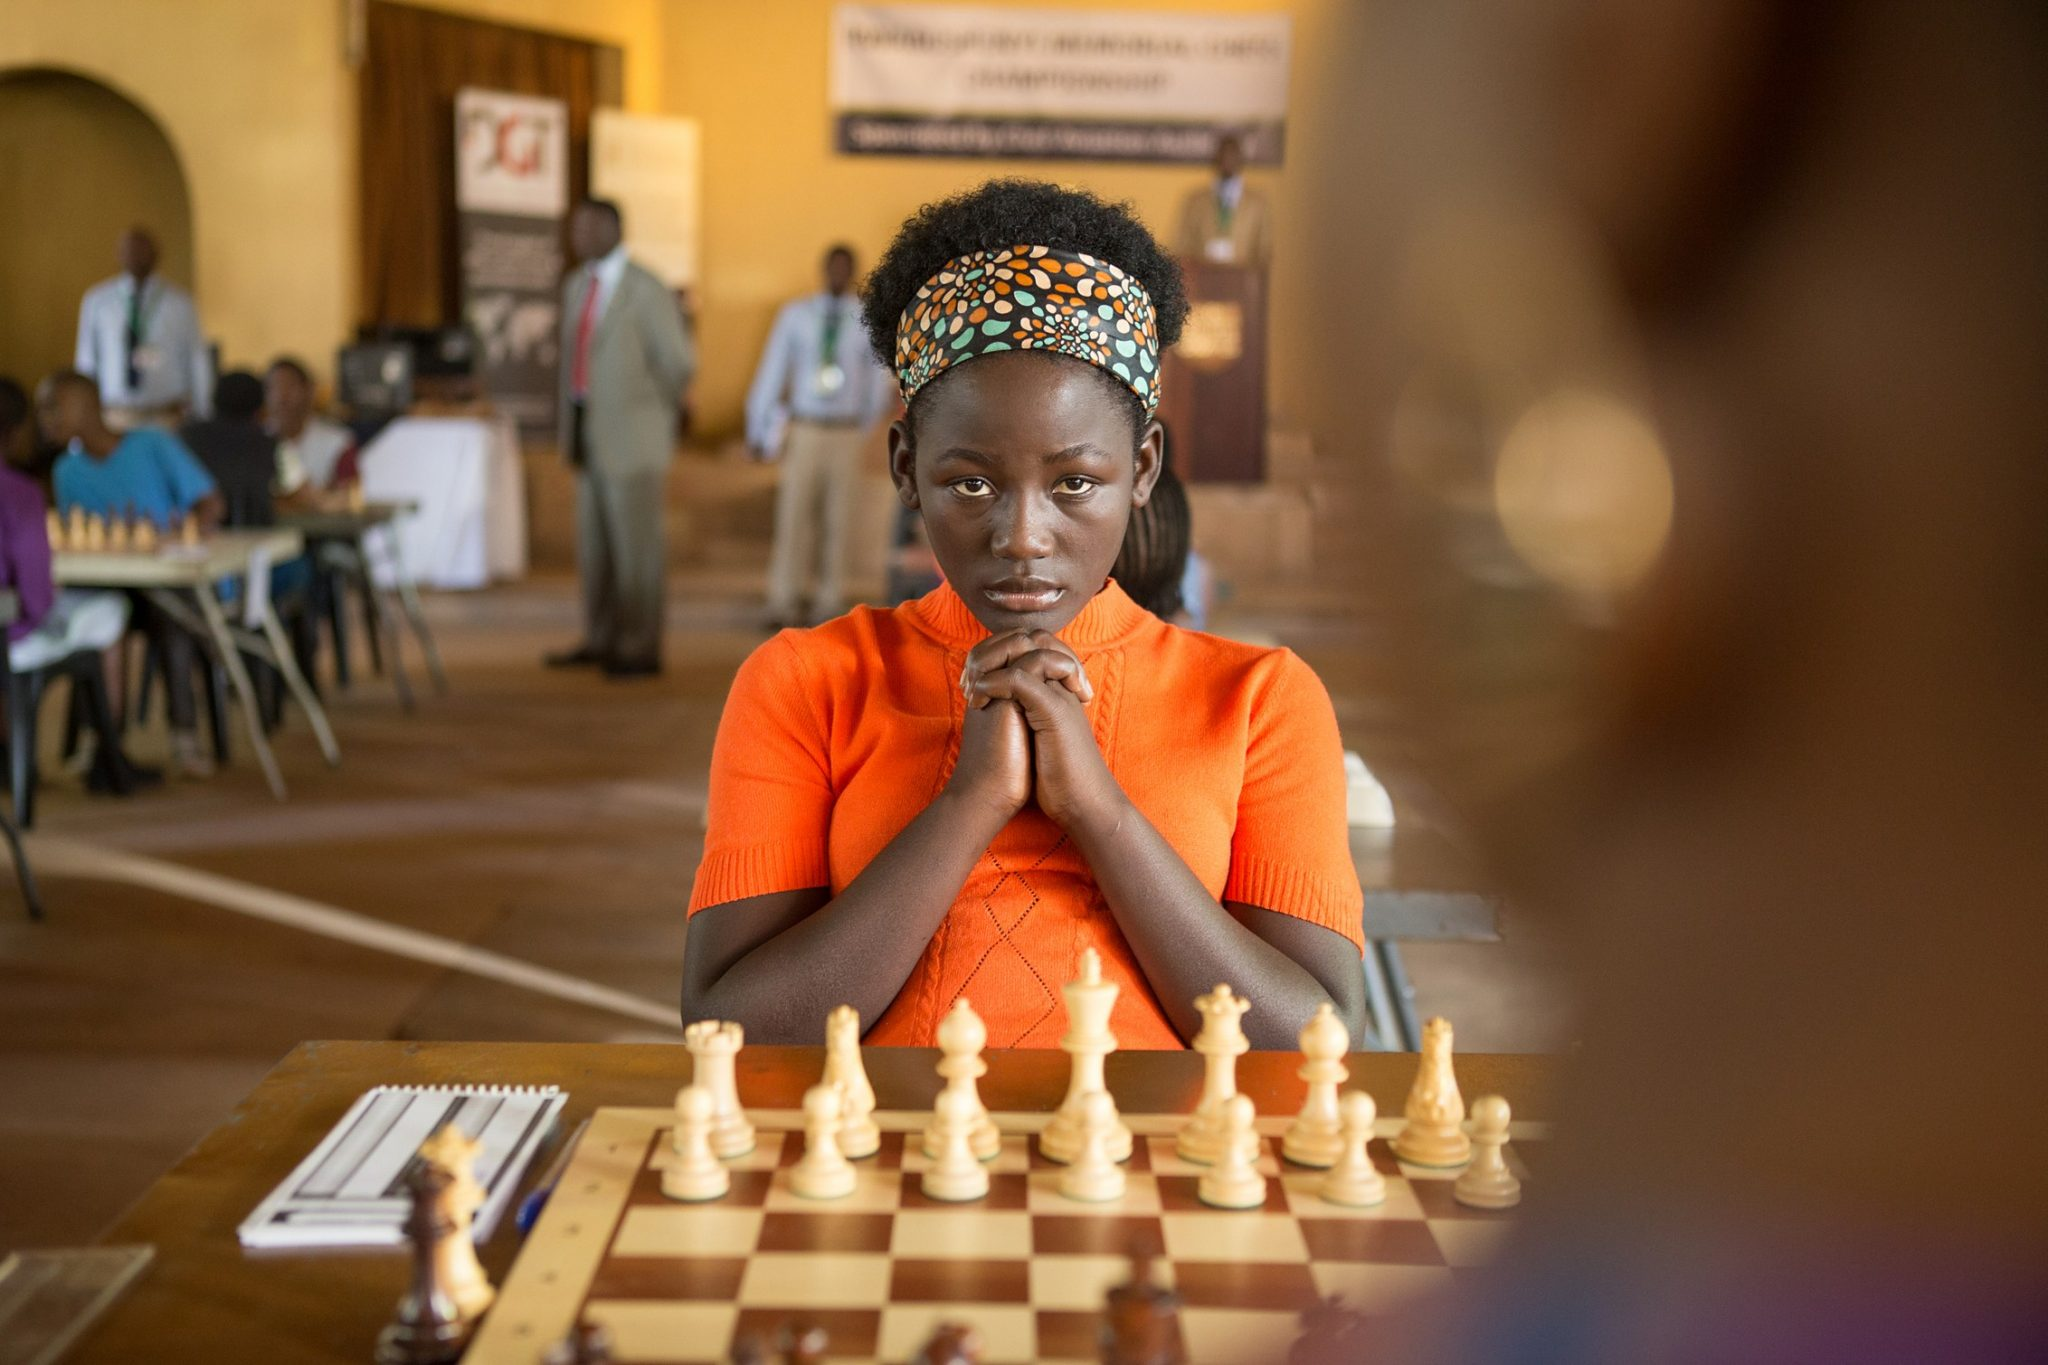 First there was Sarafina!, and now The Queen of Katwe